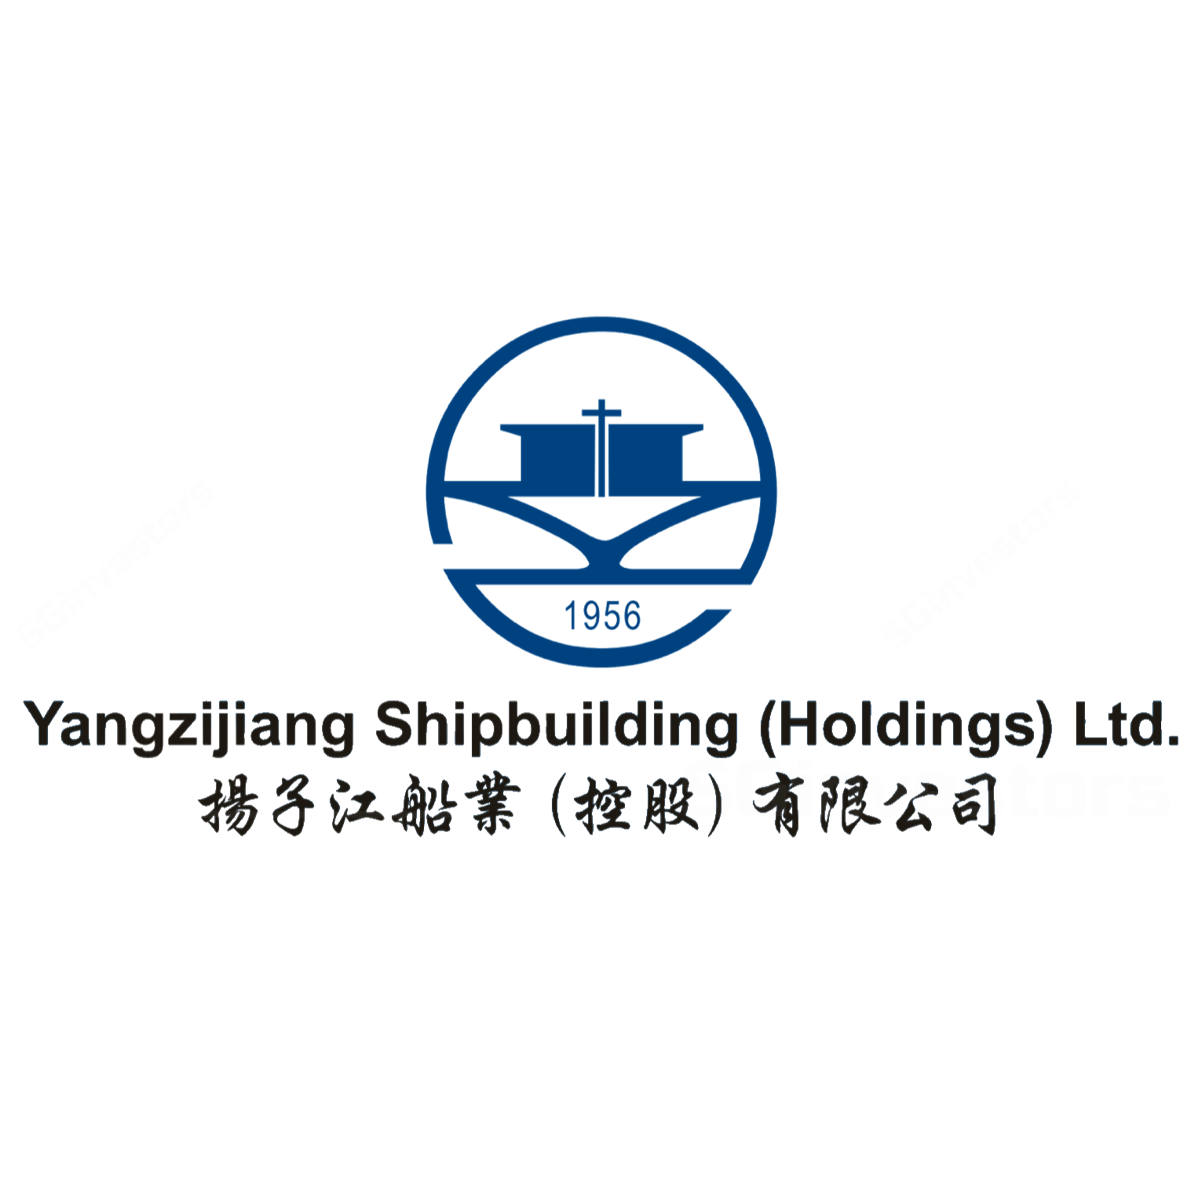 Yangzijiang Shipbuilding - OCBC Investment 2018-06-12: Valuations Now  More Attractive